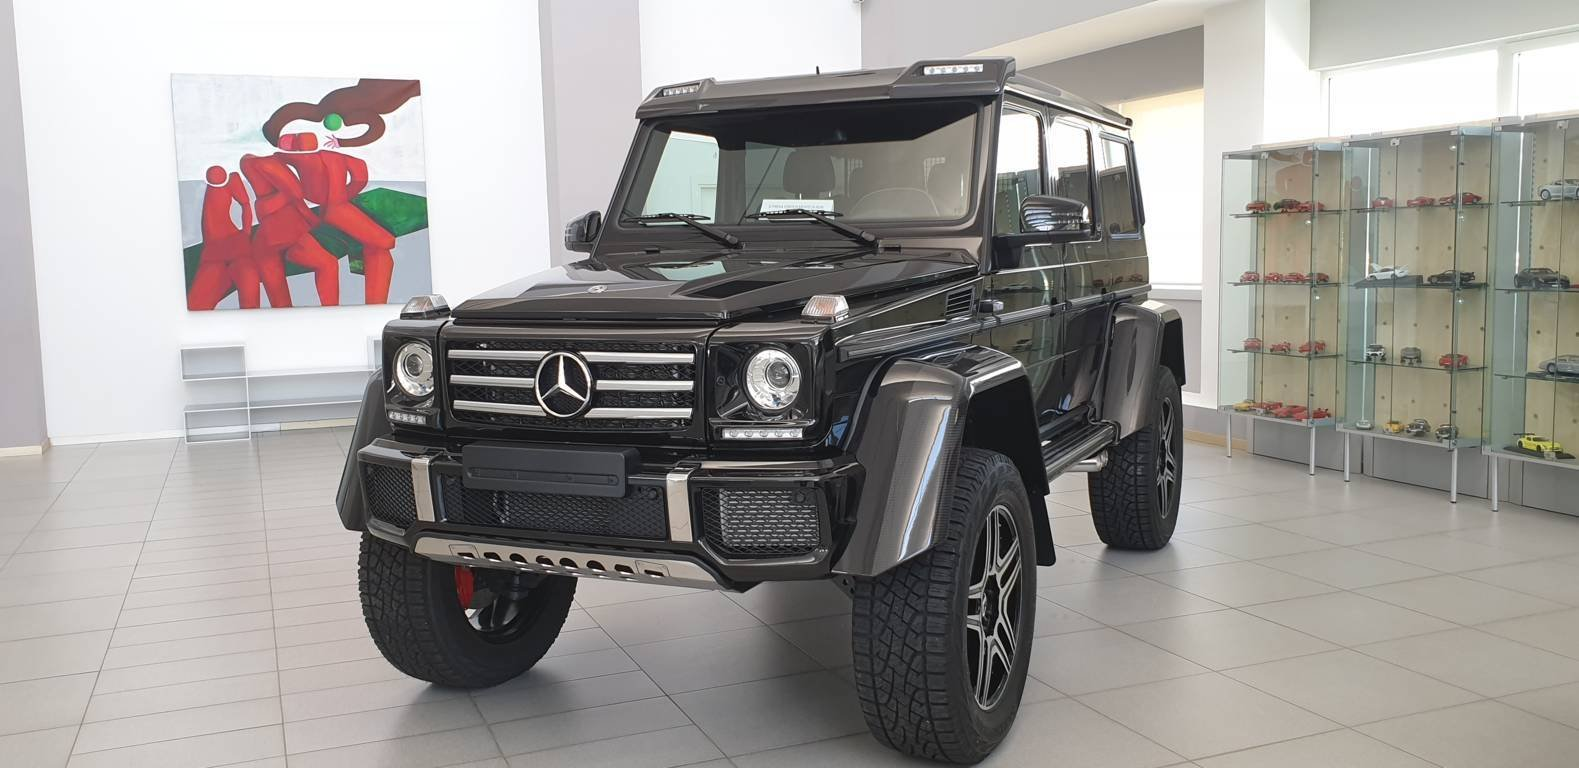 2019 Mercedes Benz G 4x4² For Sale (picture 1 of 6)